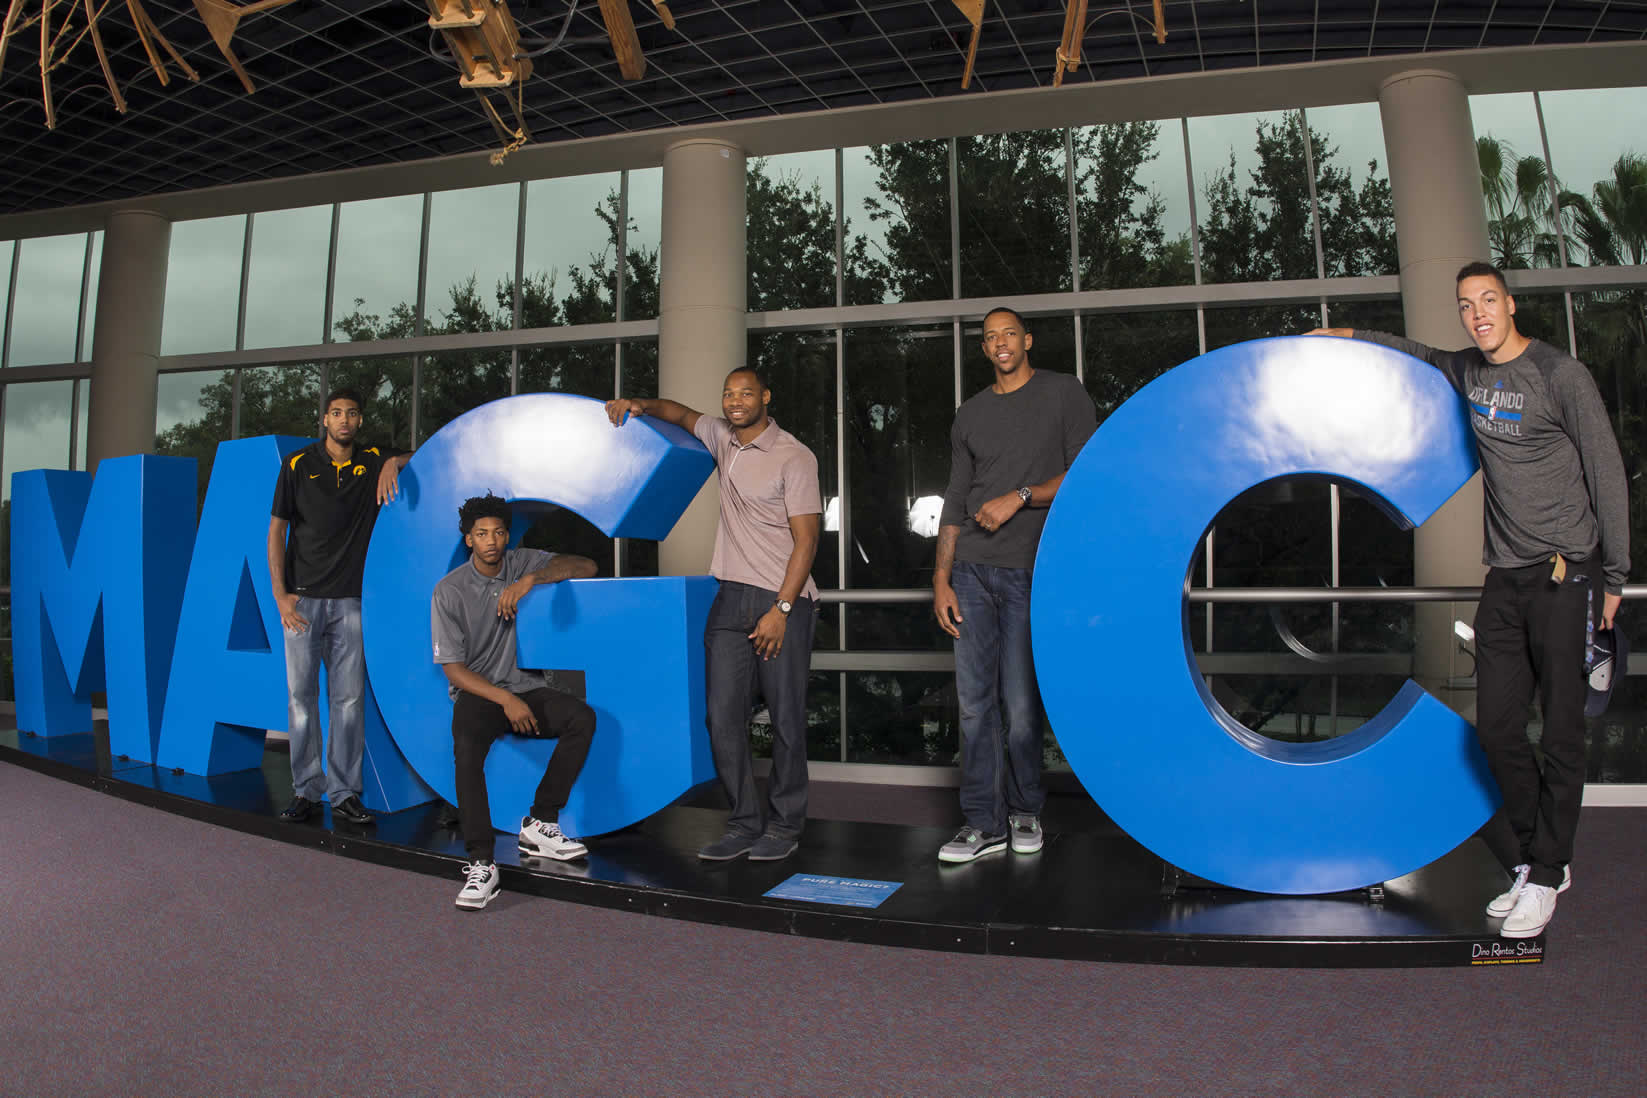 #PureMagicSweeps - Orlando Magic Giant Sculpture of Letters